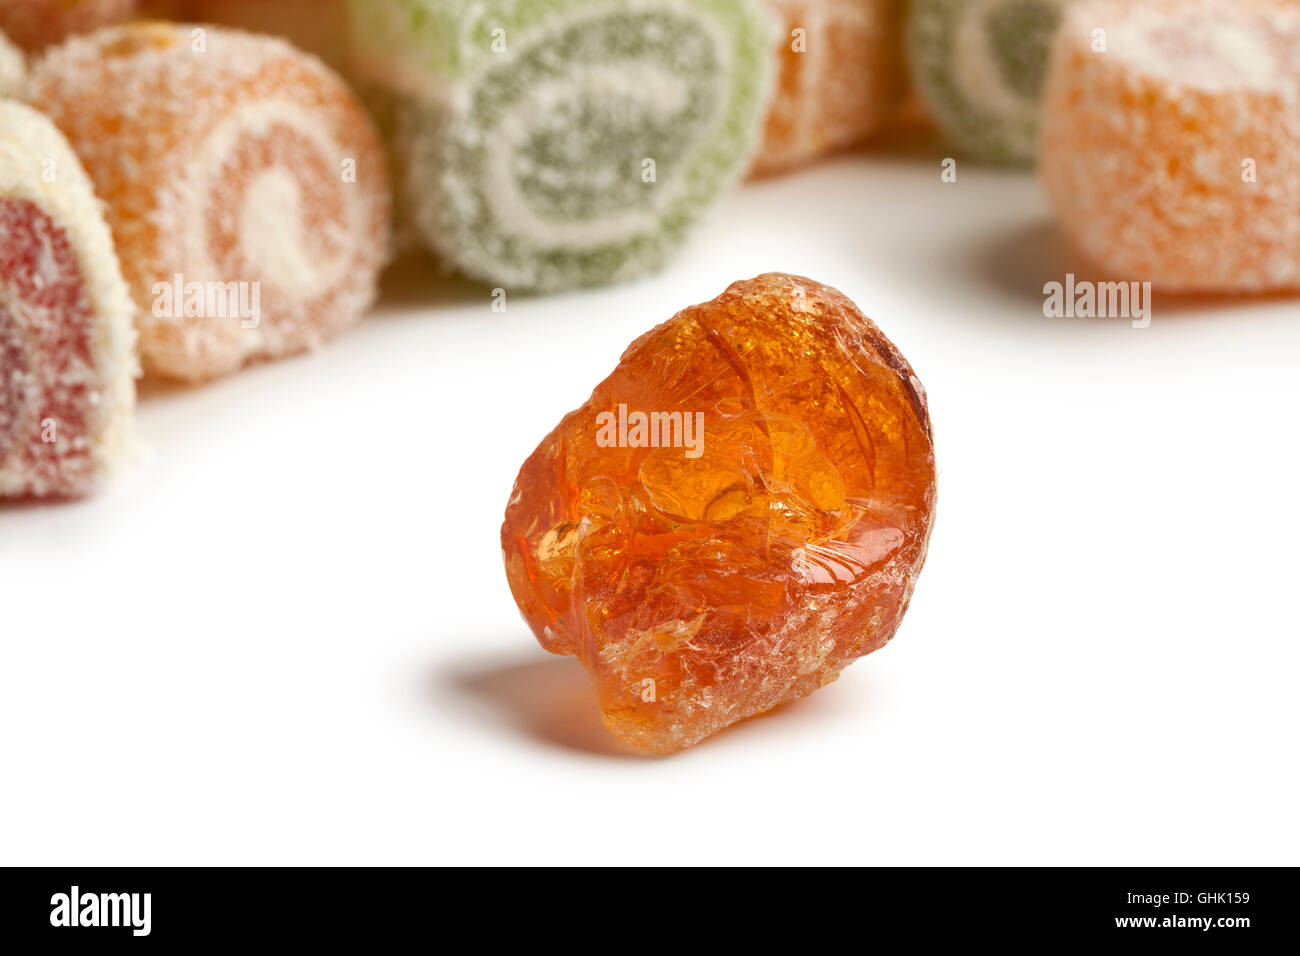 Piece of Gum arabic with turkish delight in the background - Stock Image